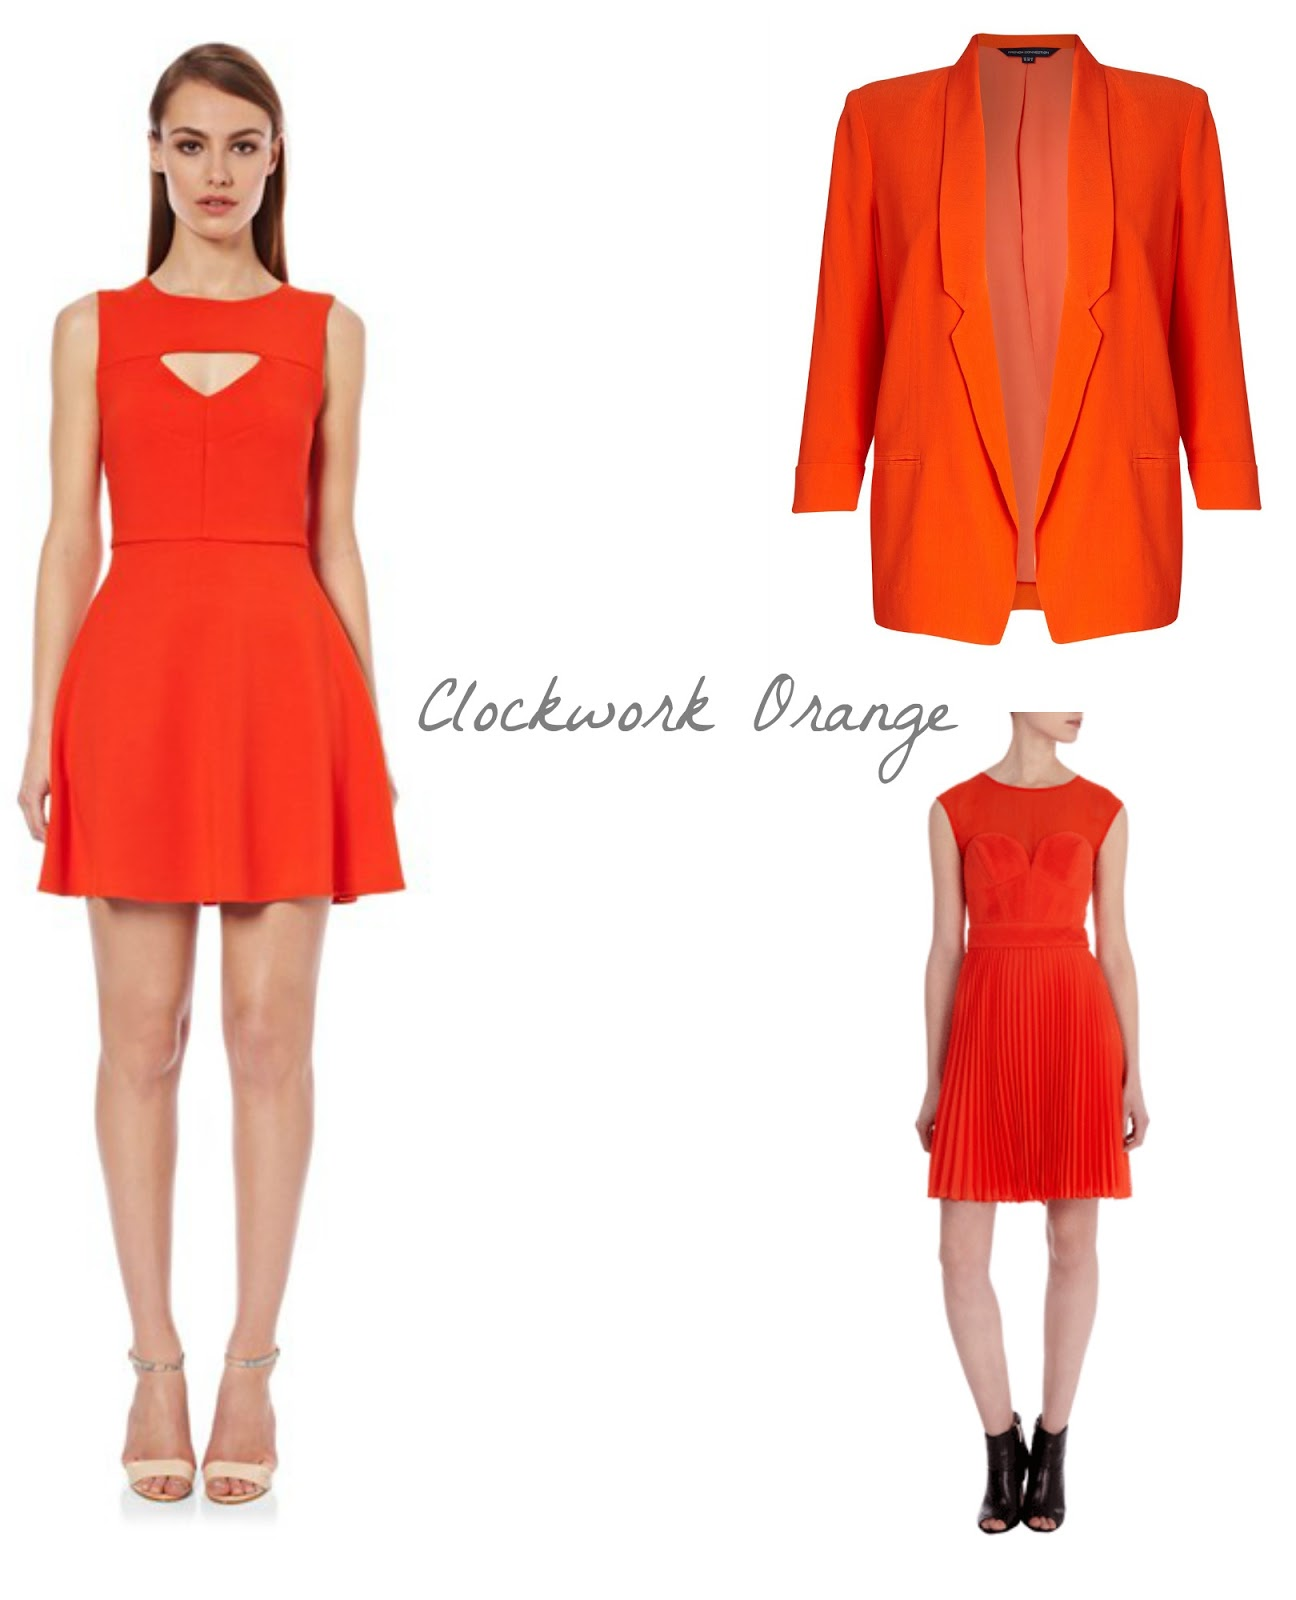 Orange fashion from Karen Millen and FCUK